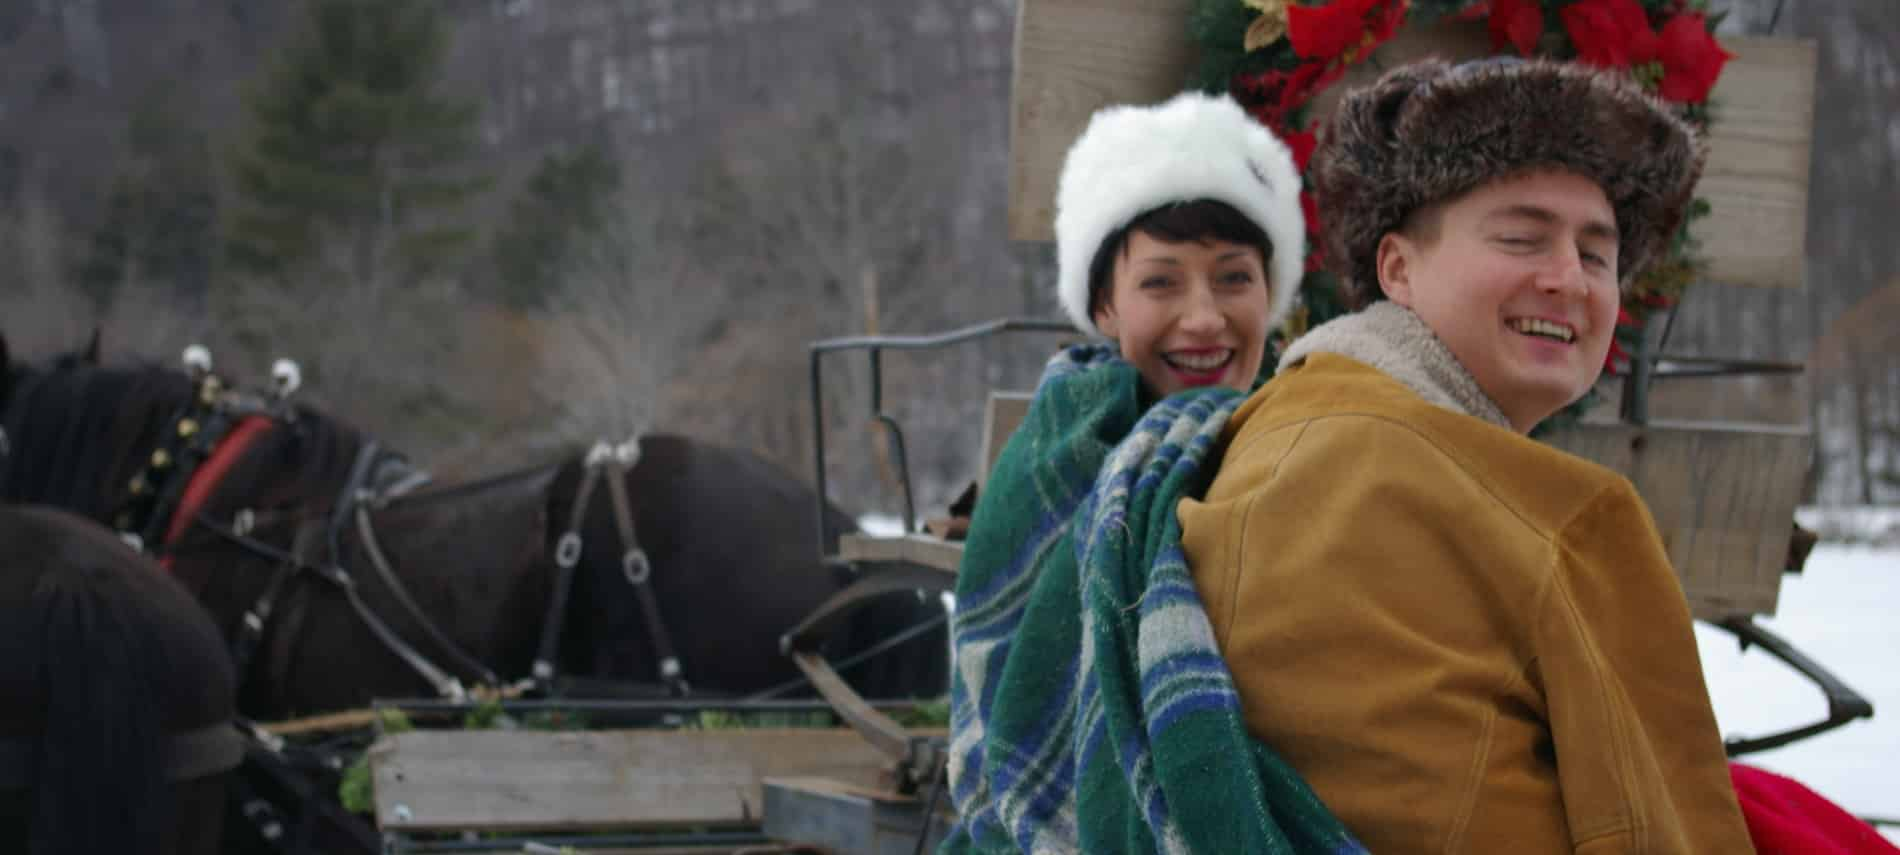 Man and woman wearing winter coats, hats and blankets sitting on a horse-drawn sleigh